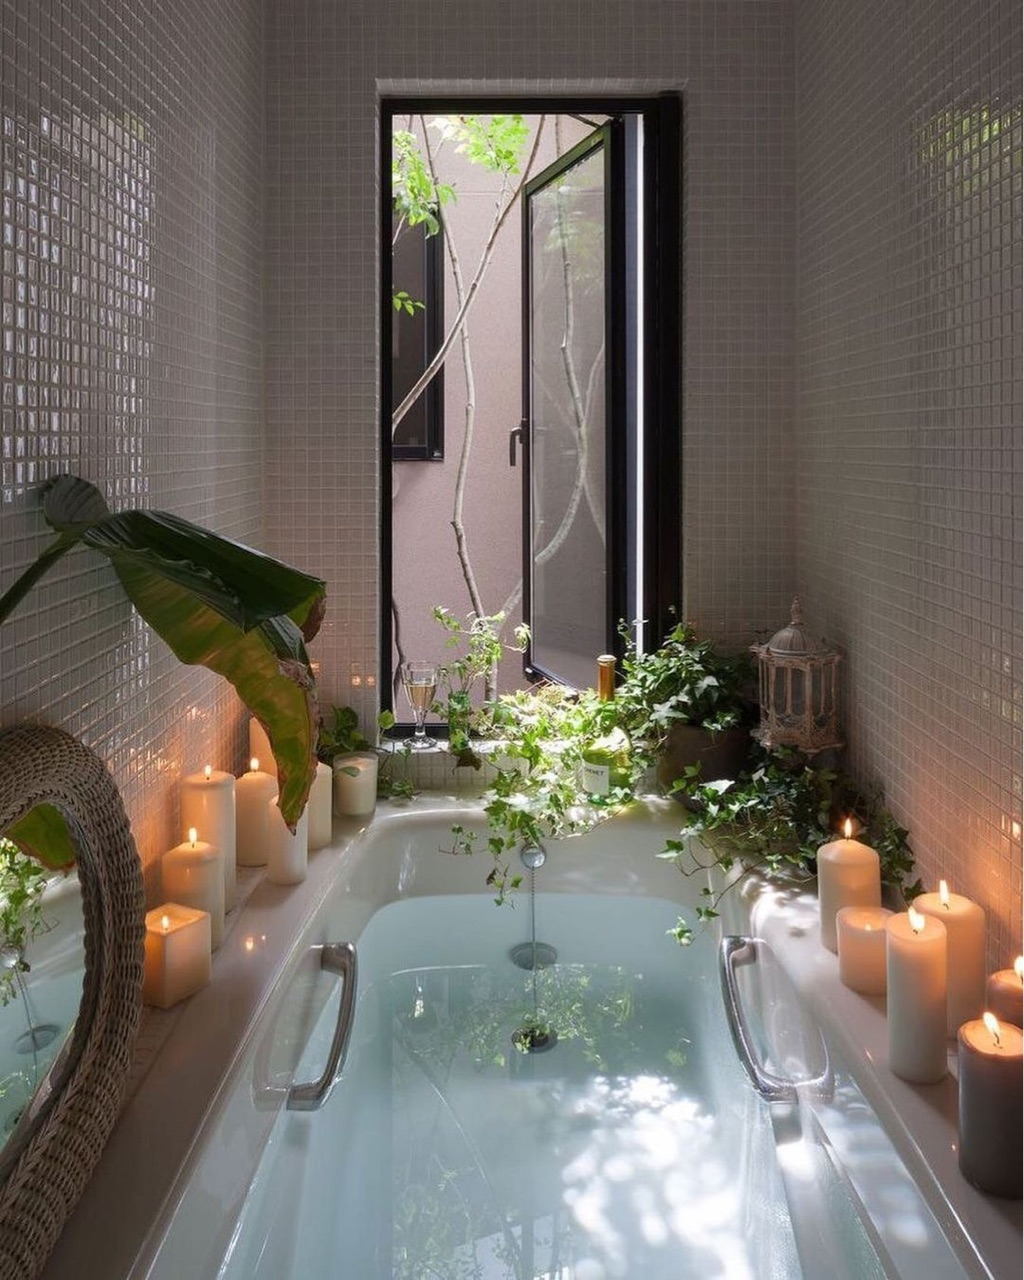 plants and bath image